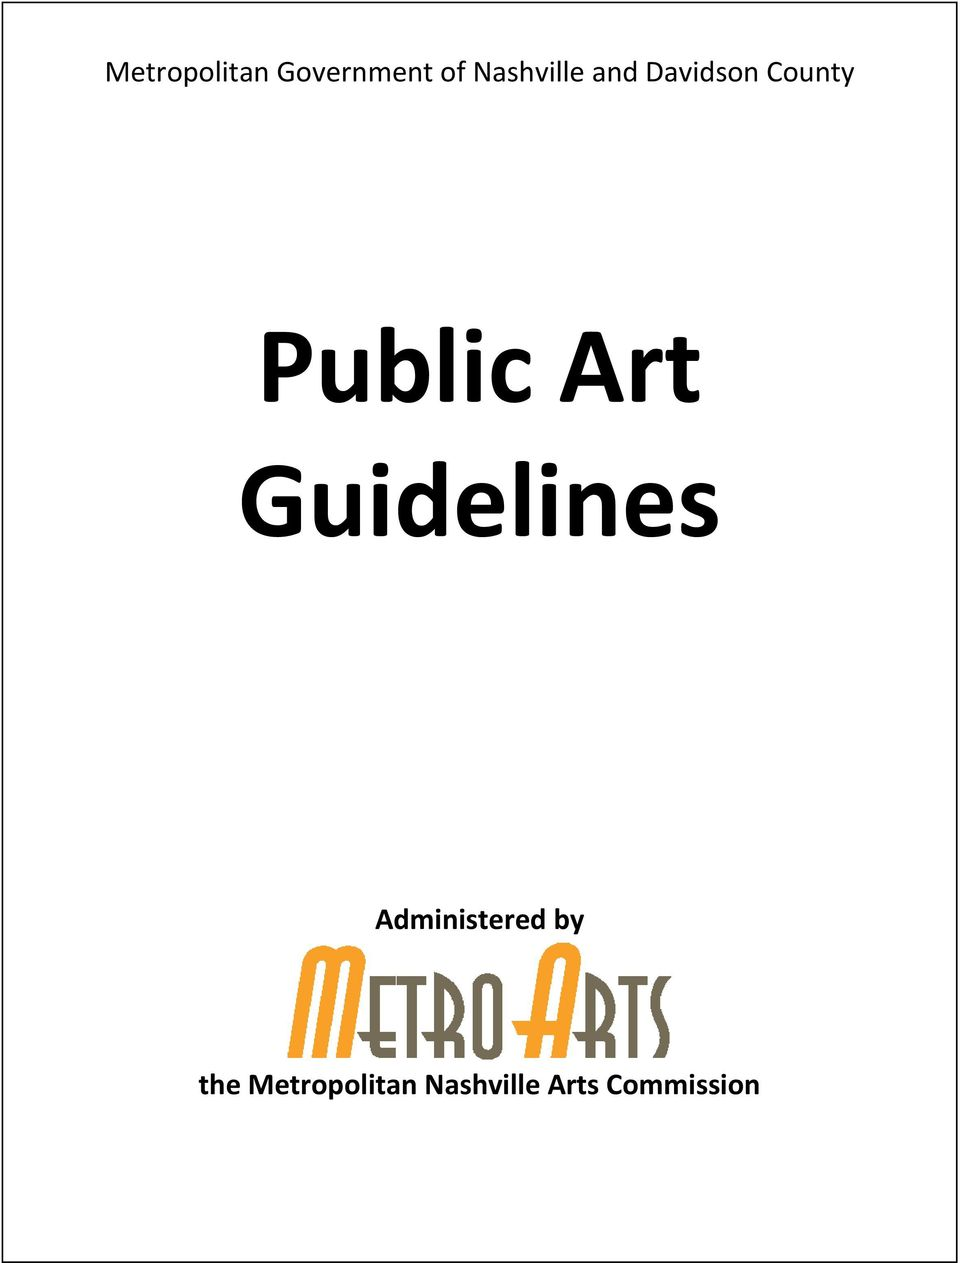 Public Art Guidelines Administered